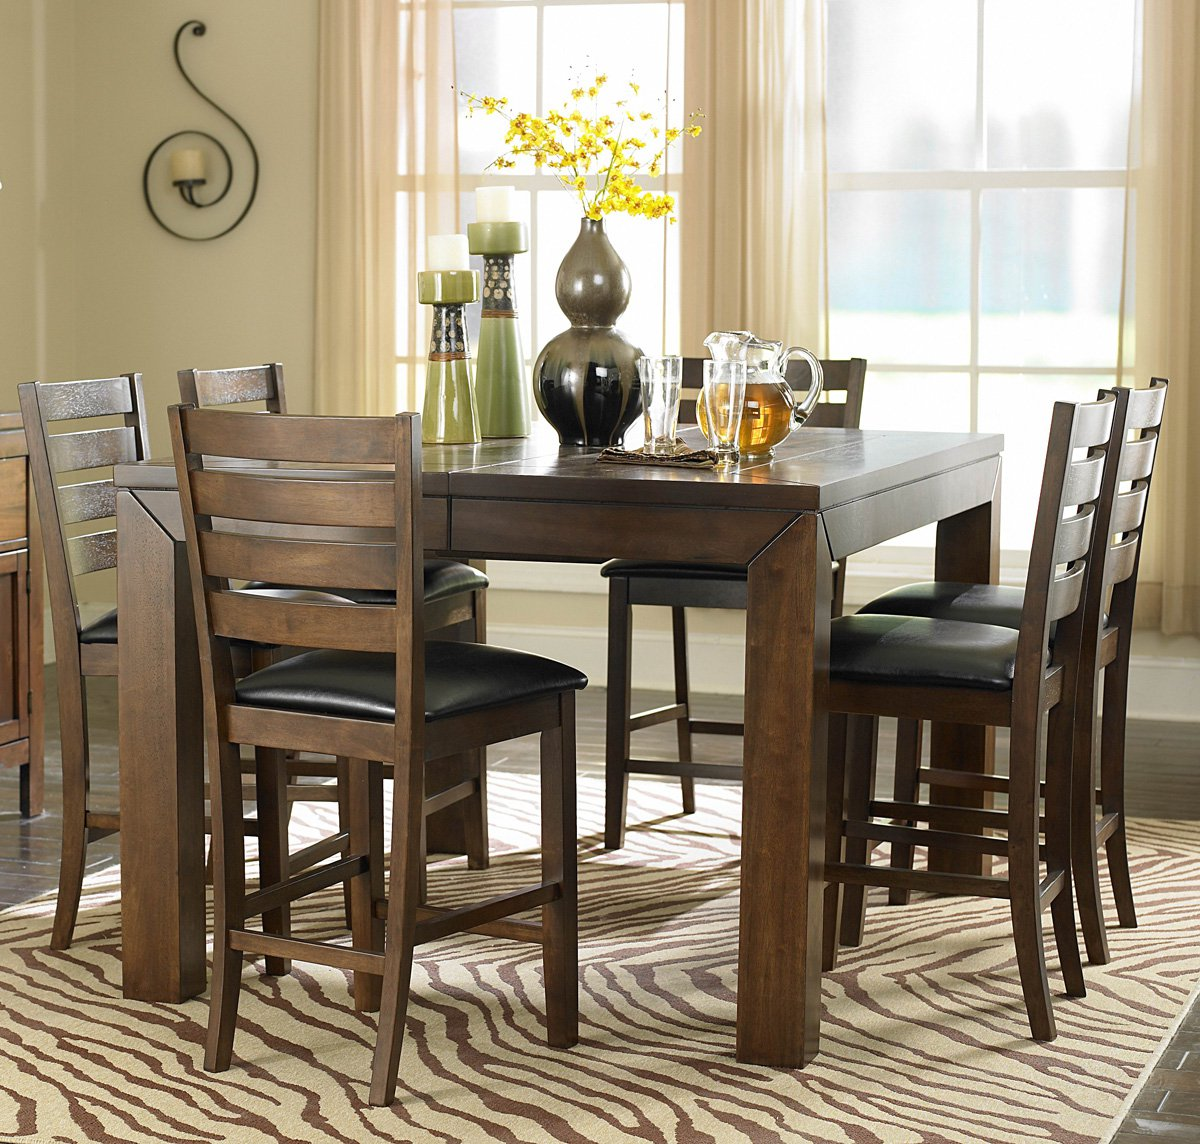 Homelegance Eagleville Butterfly Leaf Counter Height Table In Brown